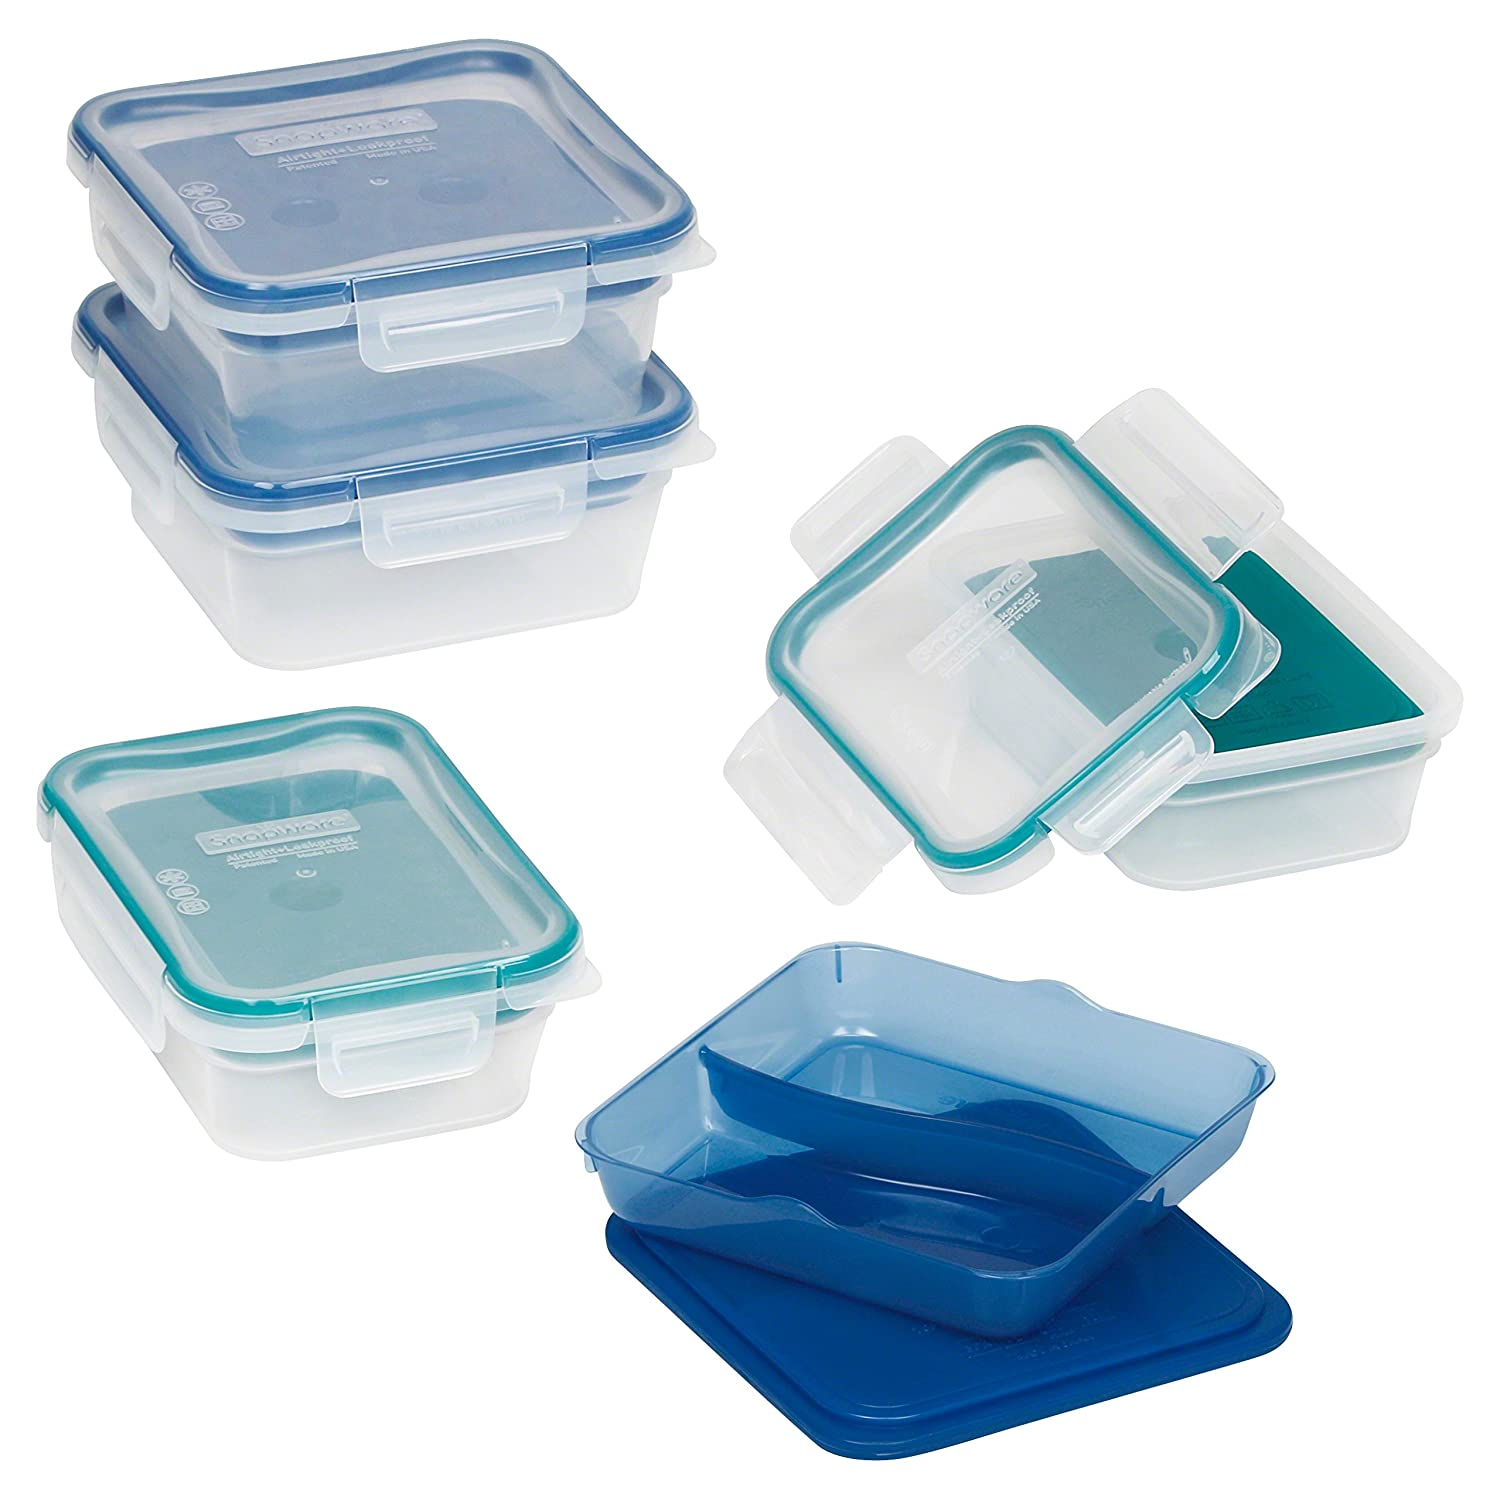 Snapware Glass Total Solutions 4-Piece Square Value Pack